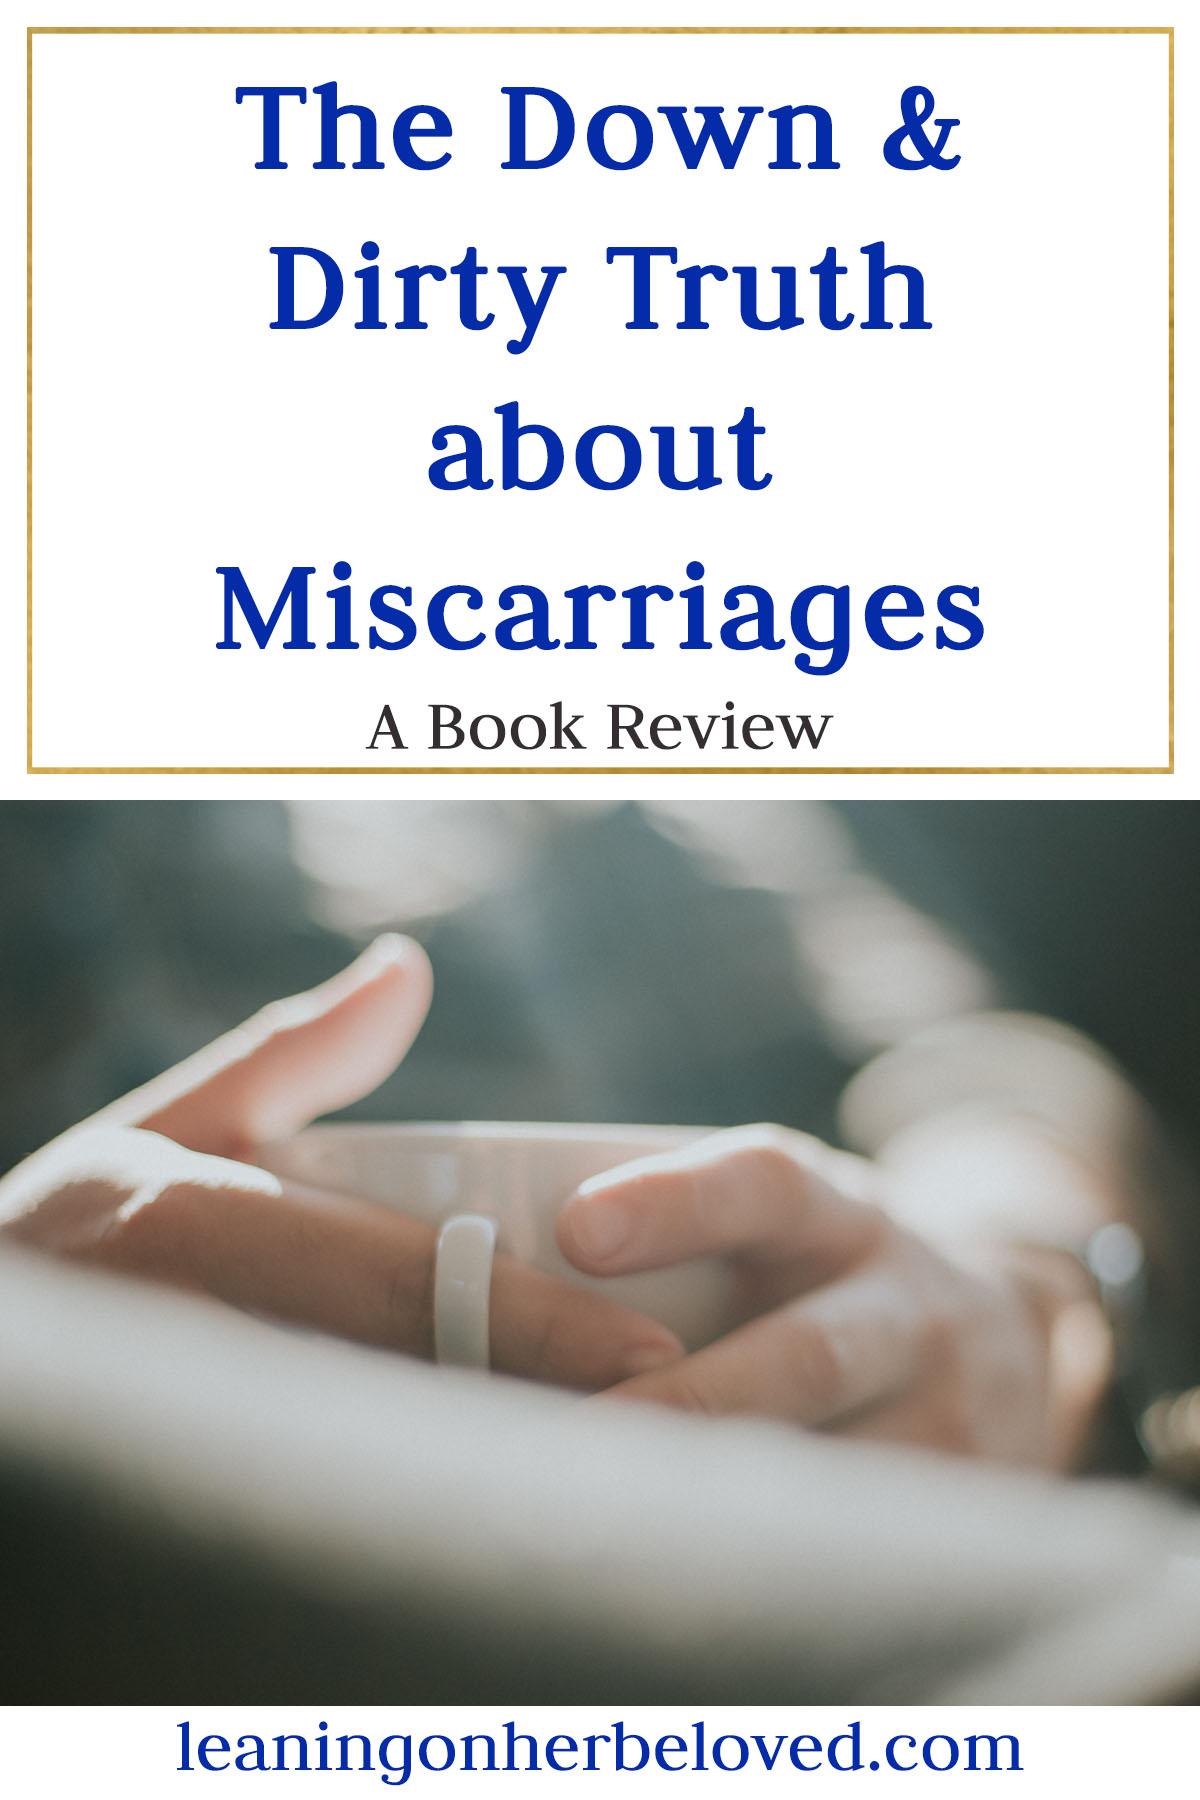 A book review about the Book: The Down and Dirty Truth about Miscarriages for Mothers who have suffered early miscarriage, stillbirth, and infant loss